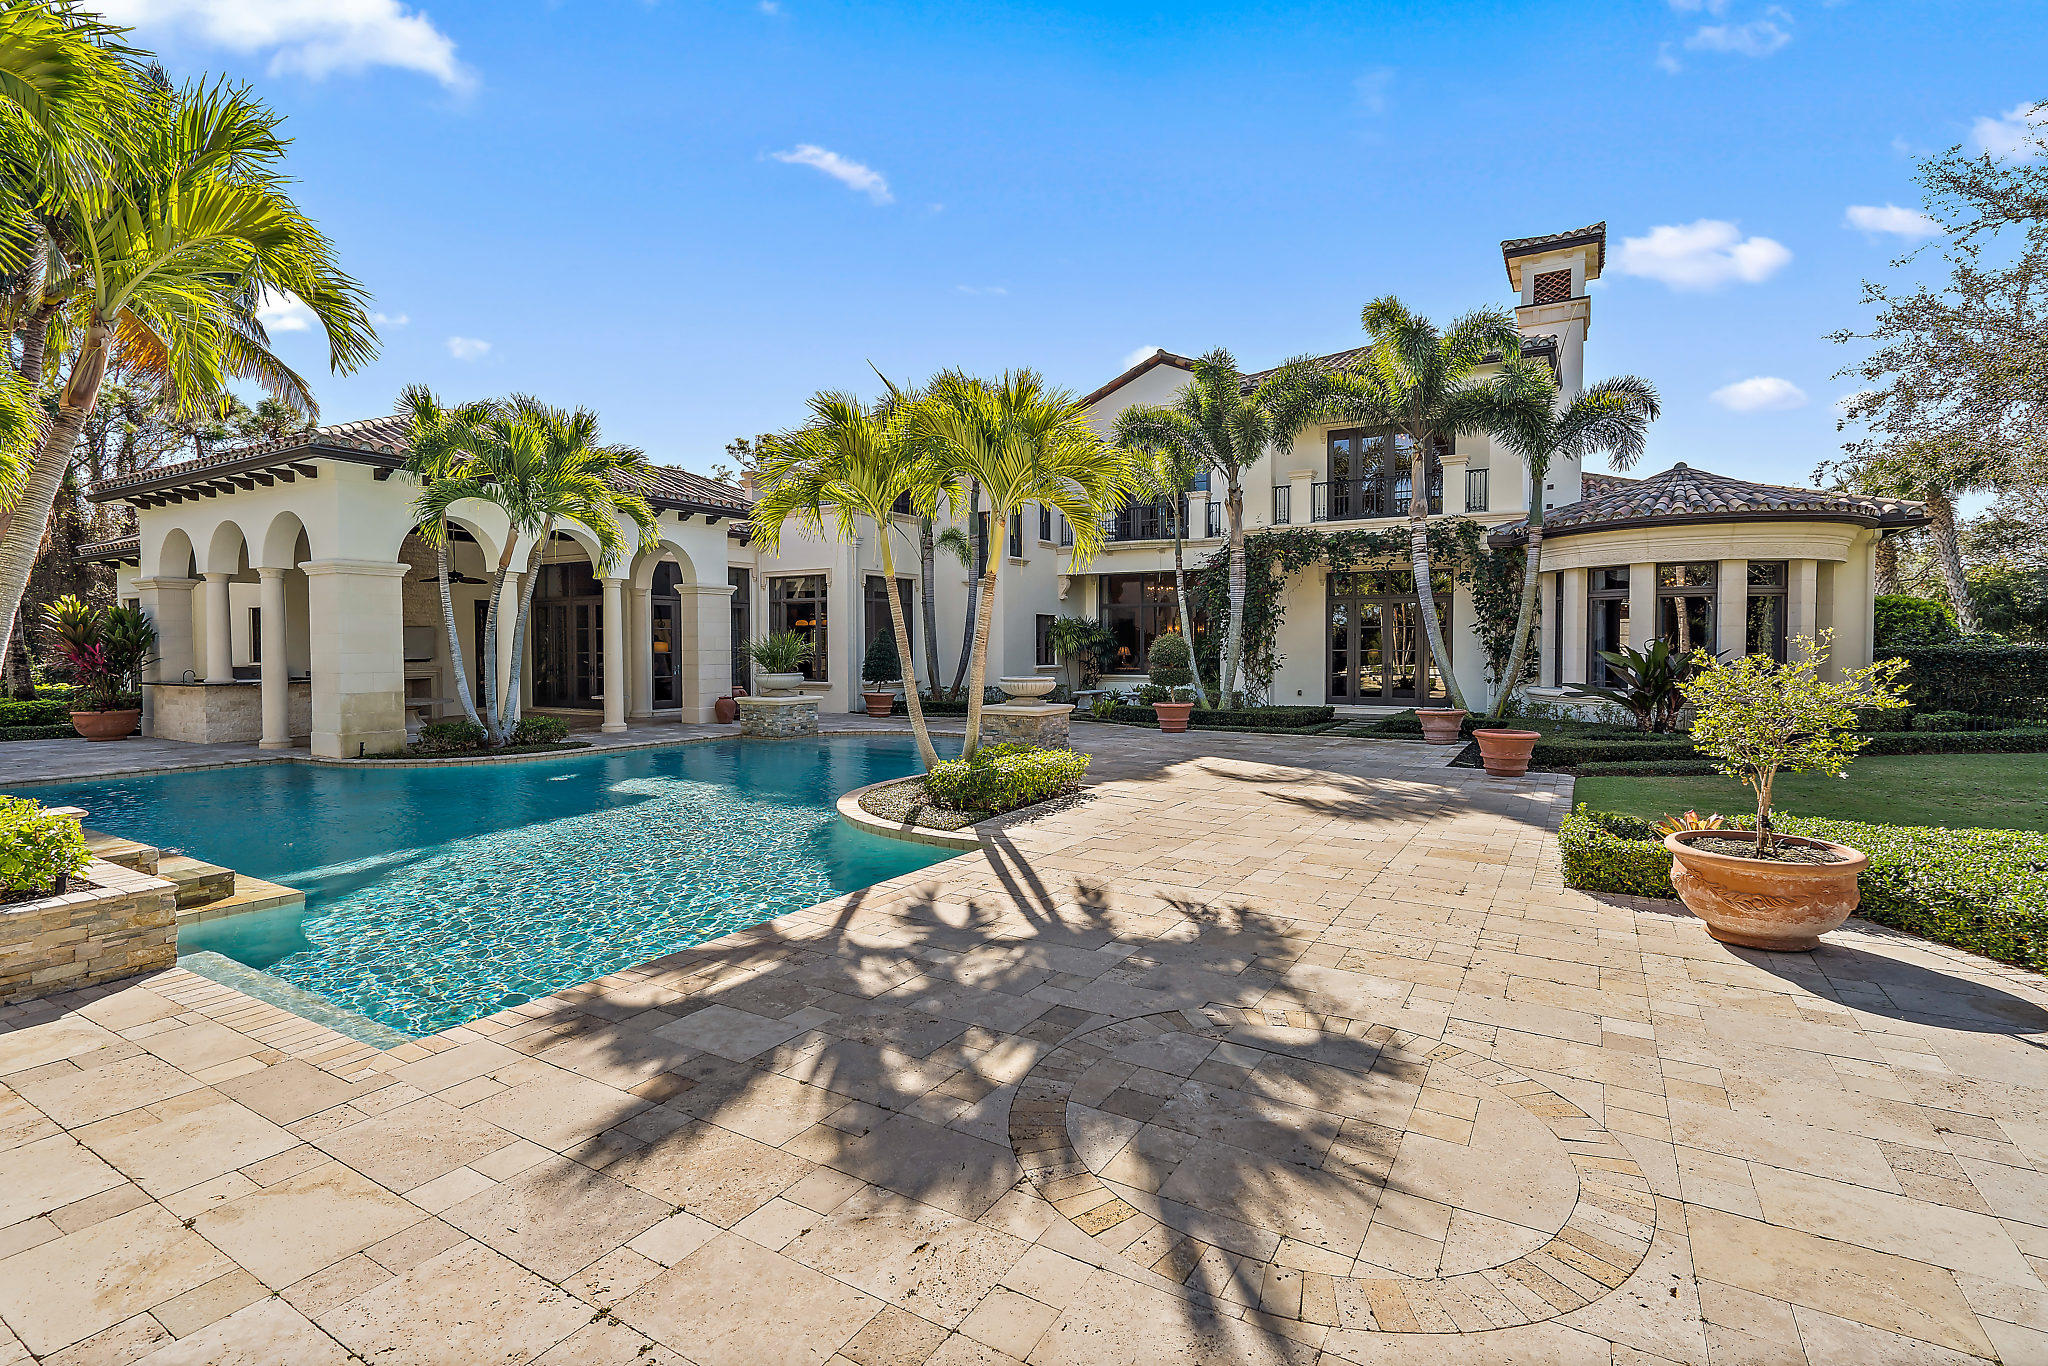 New Home for sale at 162 Bears Club Drive in Jupiter